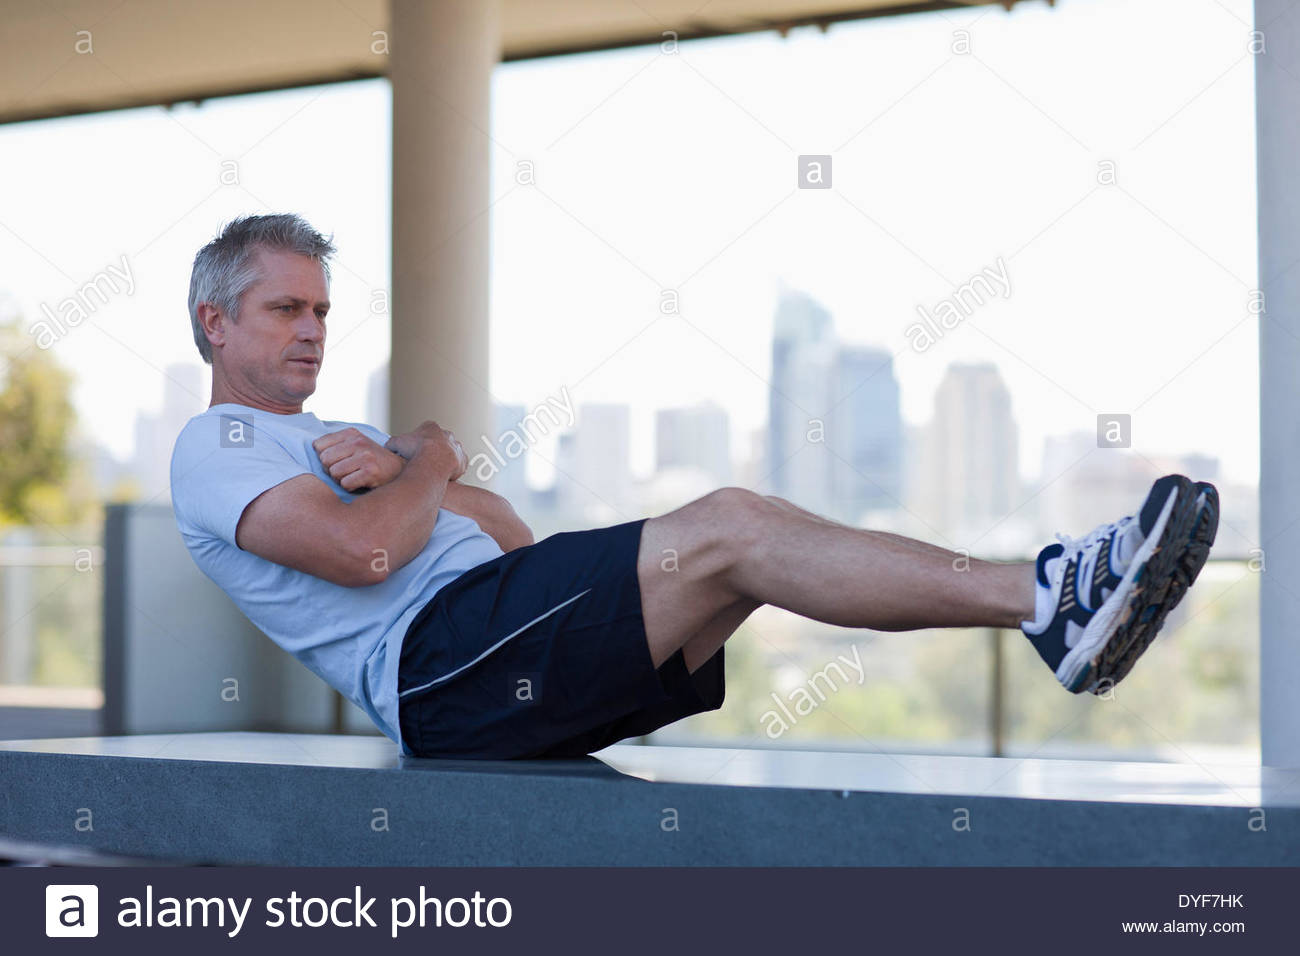 Man stretching avant l'exercice Photo Stock